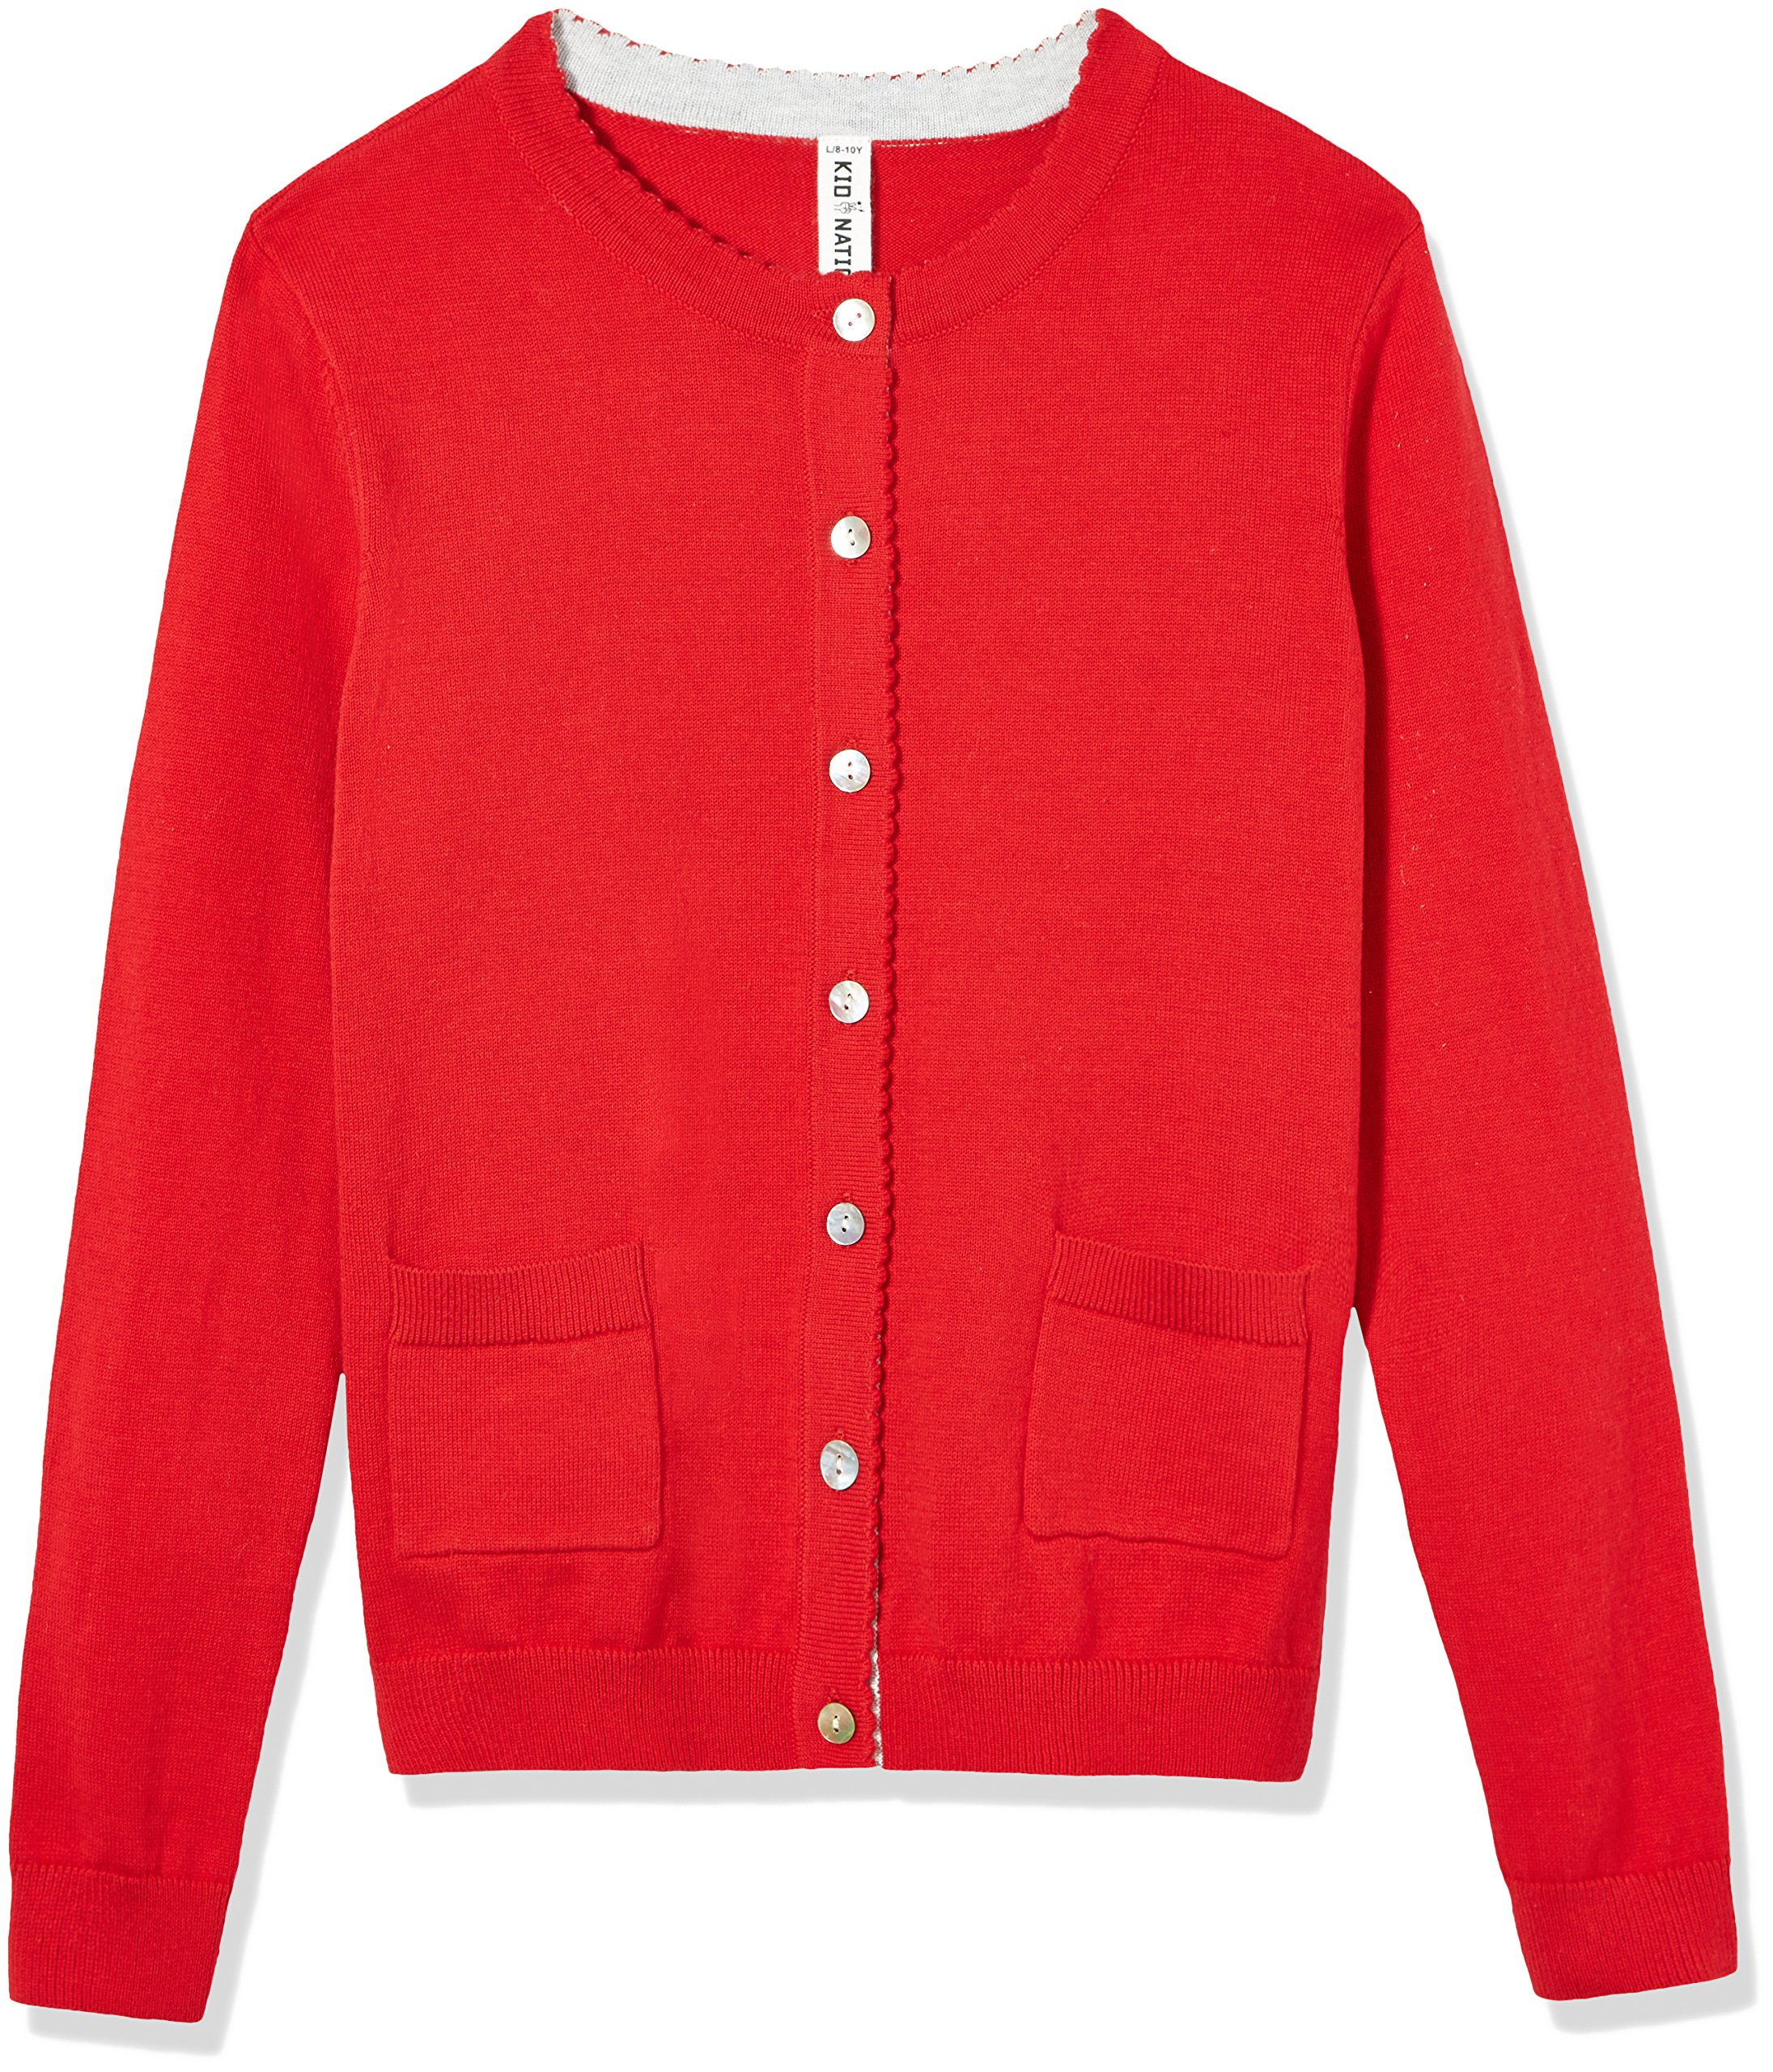 Kid Nation Girls' Long Sleeve Cardigan Sweater Classic with Pocket S Red